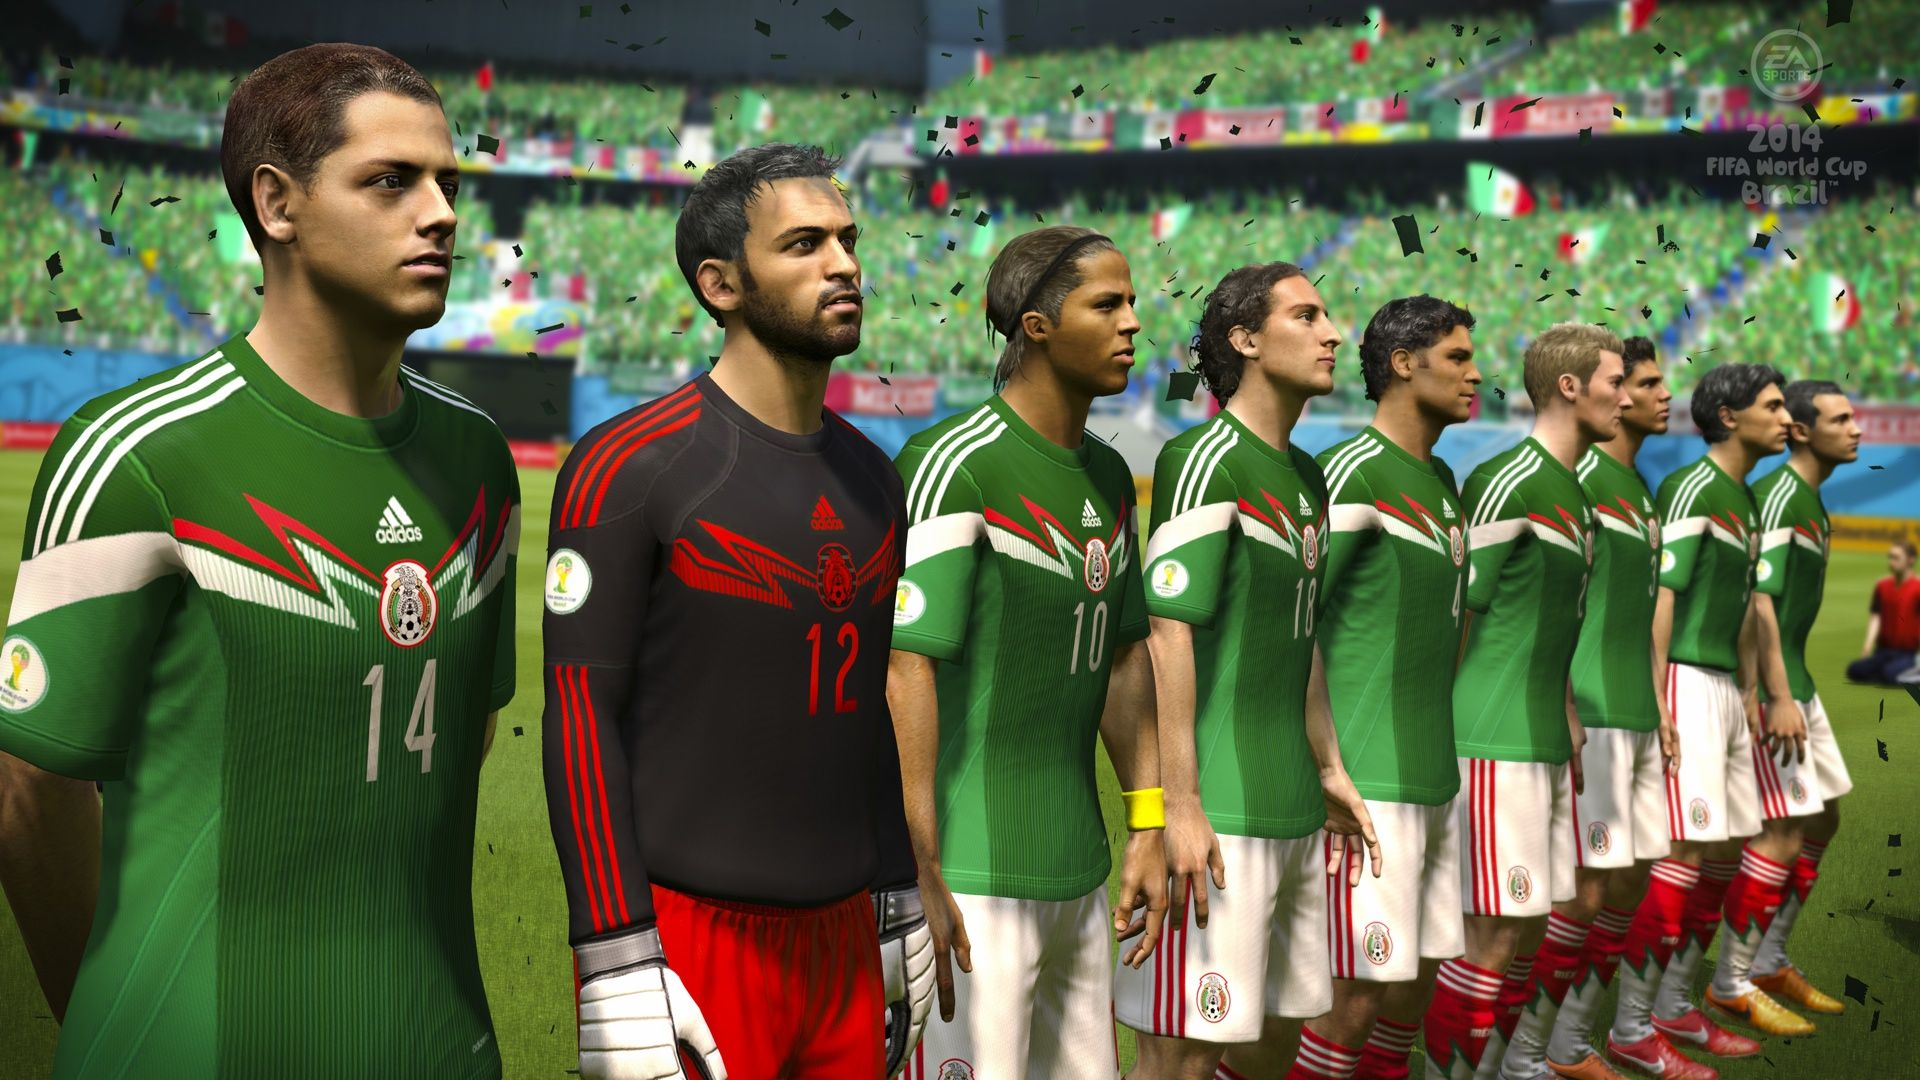 Fifa World Cup 2014 Video Game Fifa Fifa World Cup World Cup